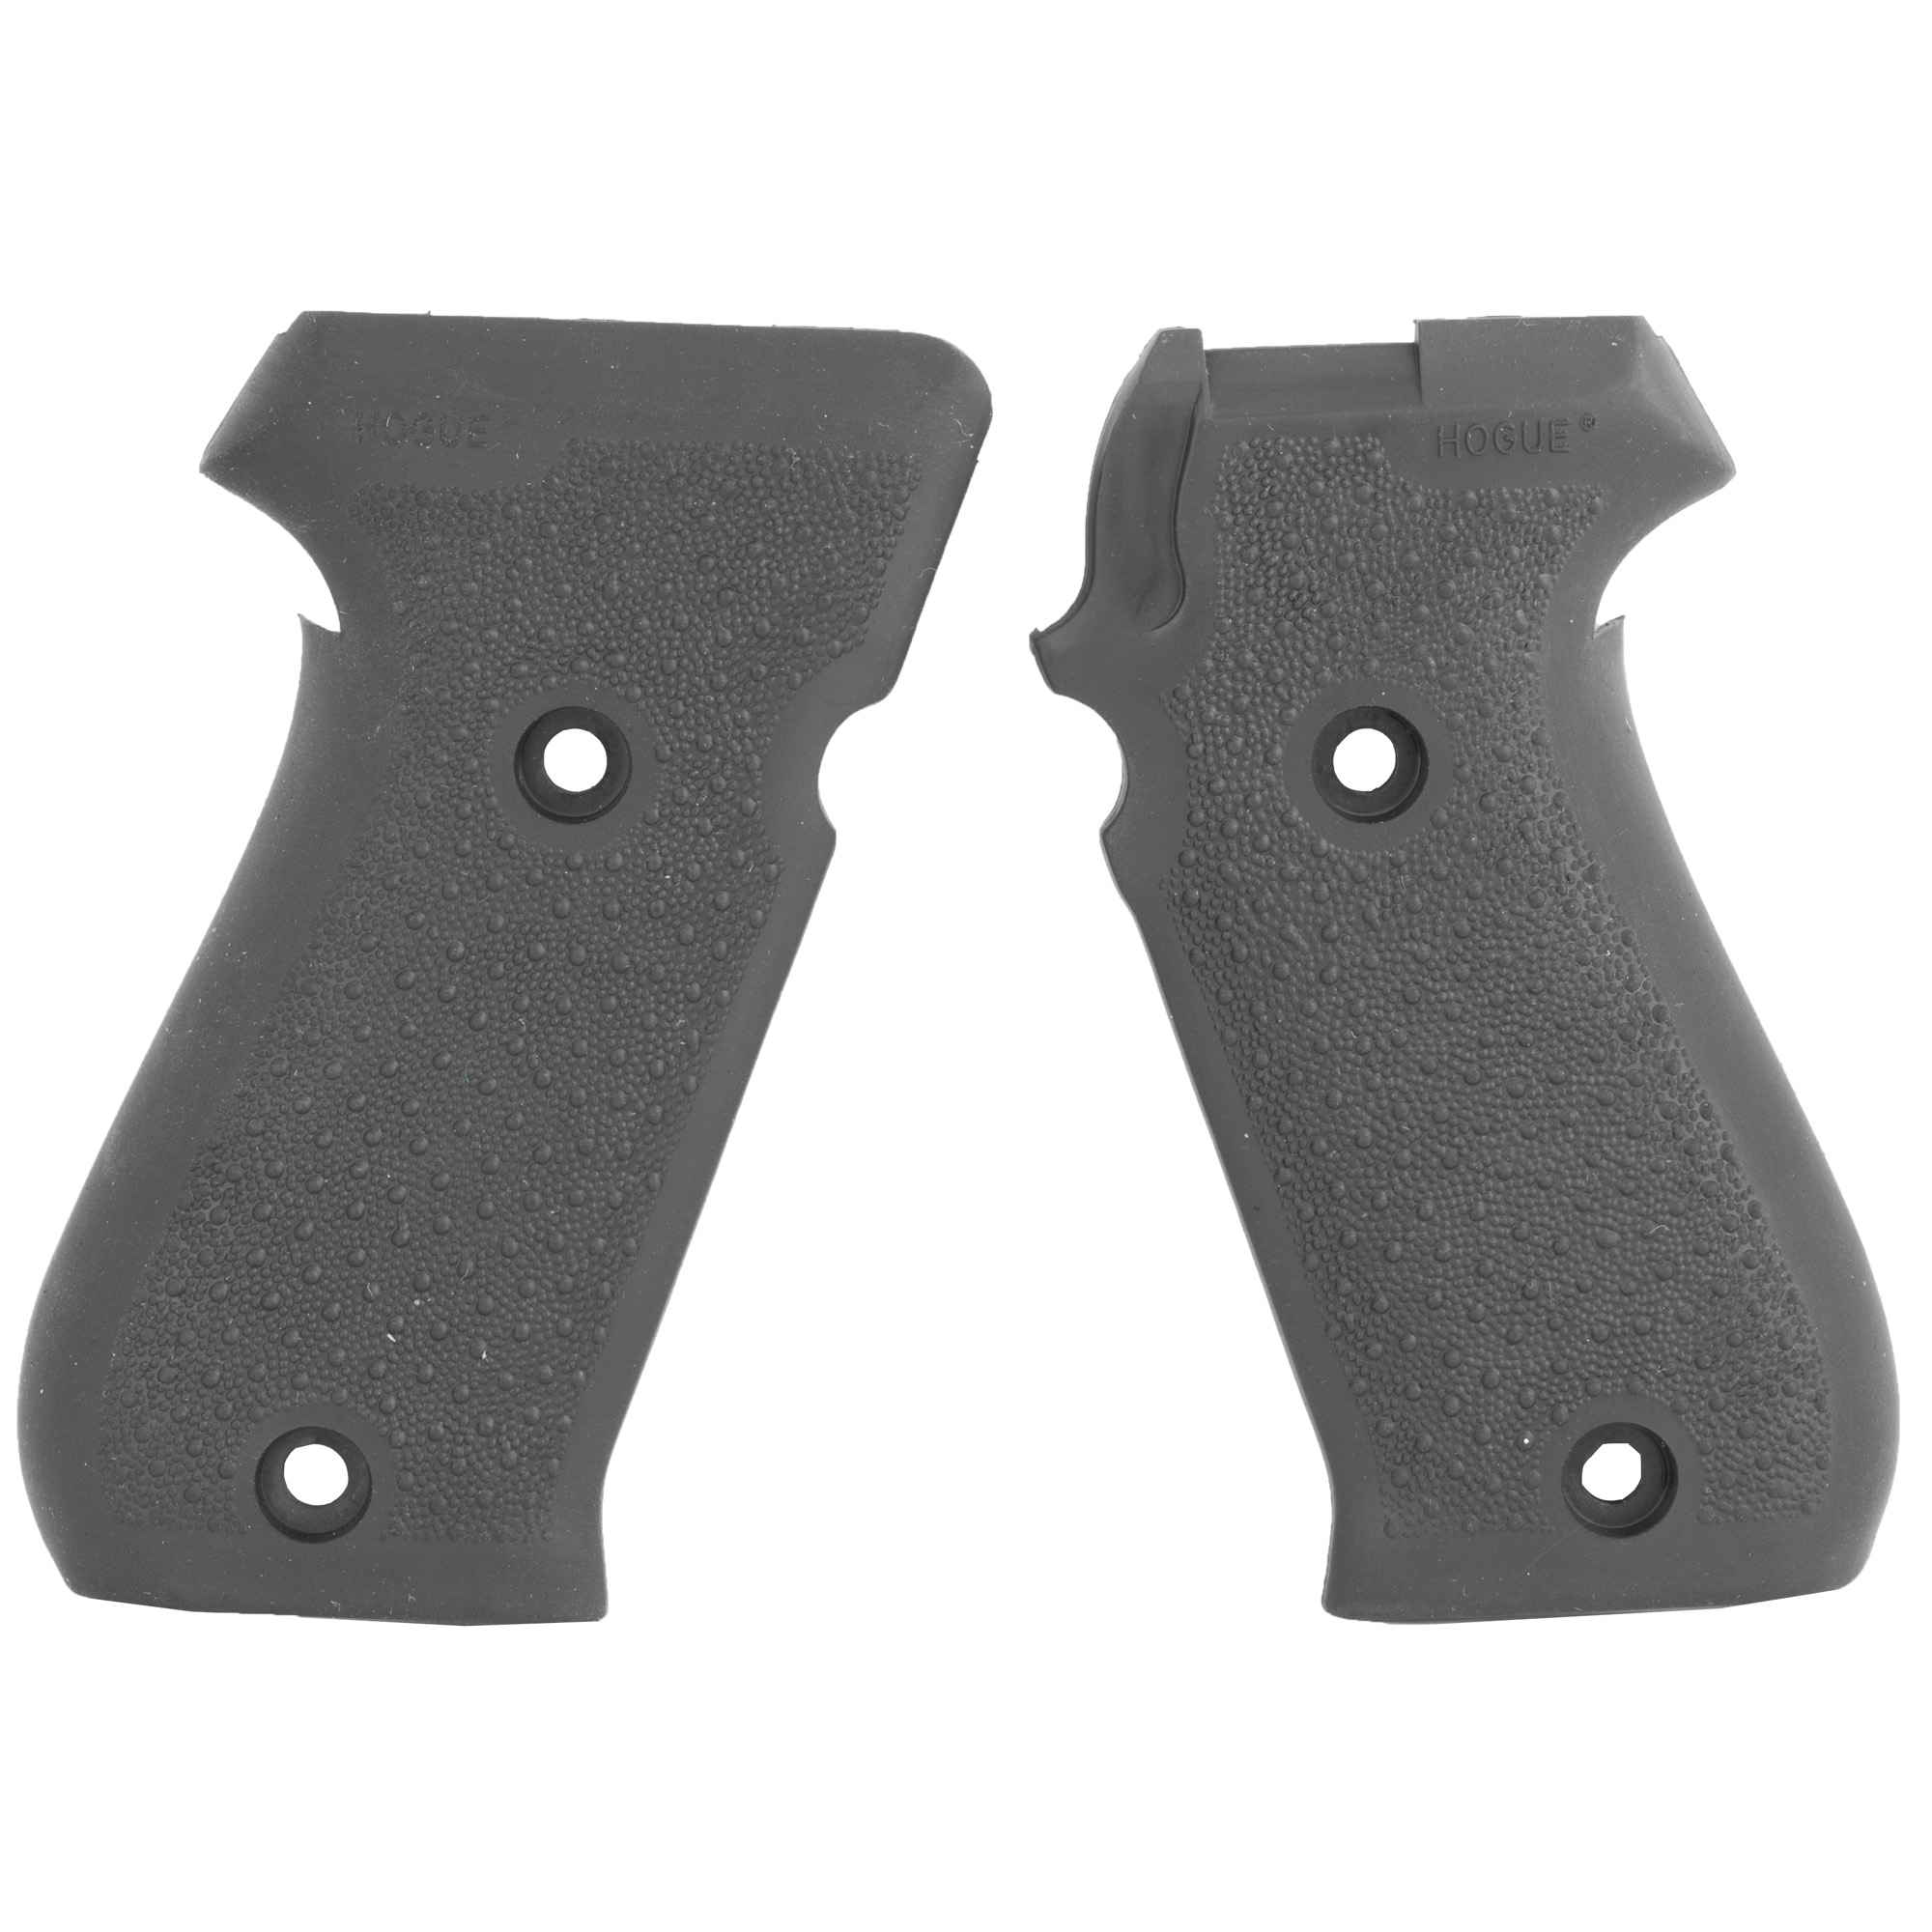 "Hogue's Monogrip (No Finger Grooves) for SIG P220 is molded from a durable synthetic rubber that is not spongy or tacky"" but gives that soft recoil absorbing feel"" without affecting accuracy. This modern rubber requires a completely different molding process than ordinary neoprene and results in a much superior grip. The material they use does not come apart or deteriorate and is resistant to all solvents and oils used around firearms. Hogue Grips give you a lasting precision fit and durability that will provide years of dependable service. The flexibility of their materials and molding process has allowed them to produce superior rubber grips with features that out perform all other makes."